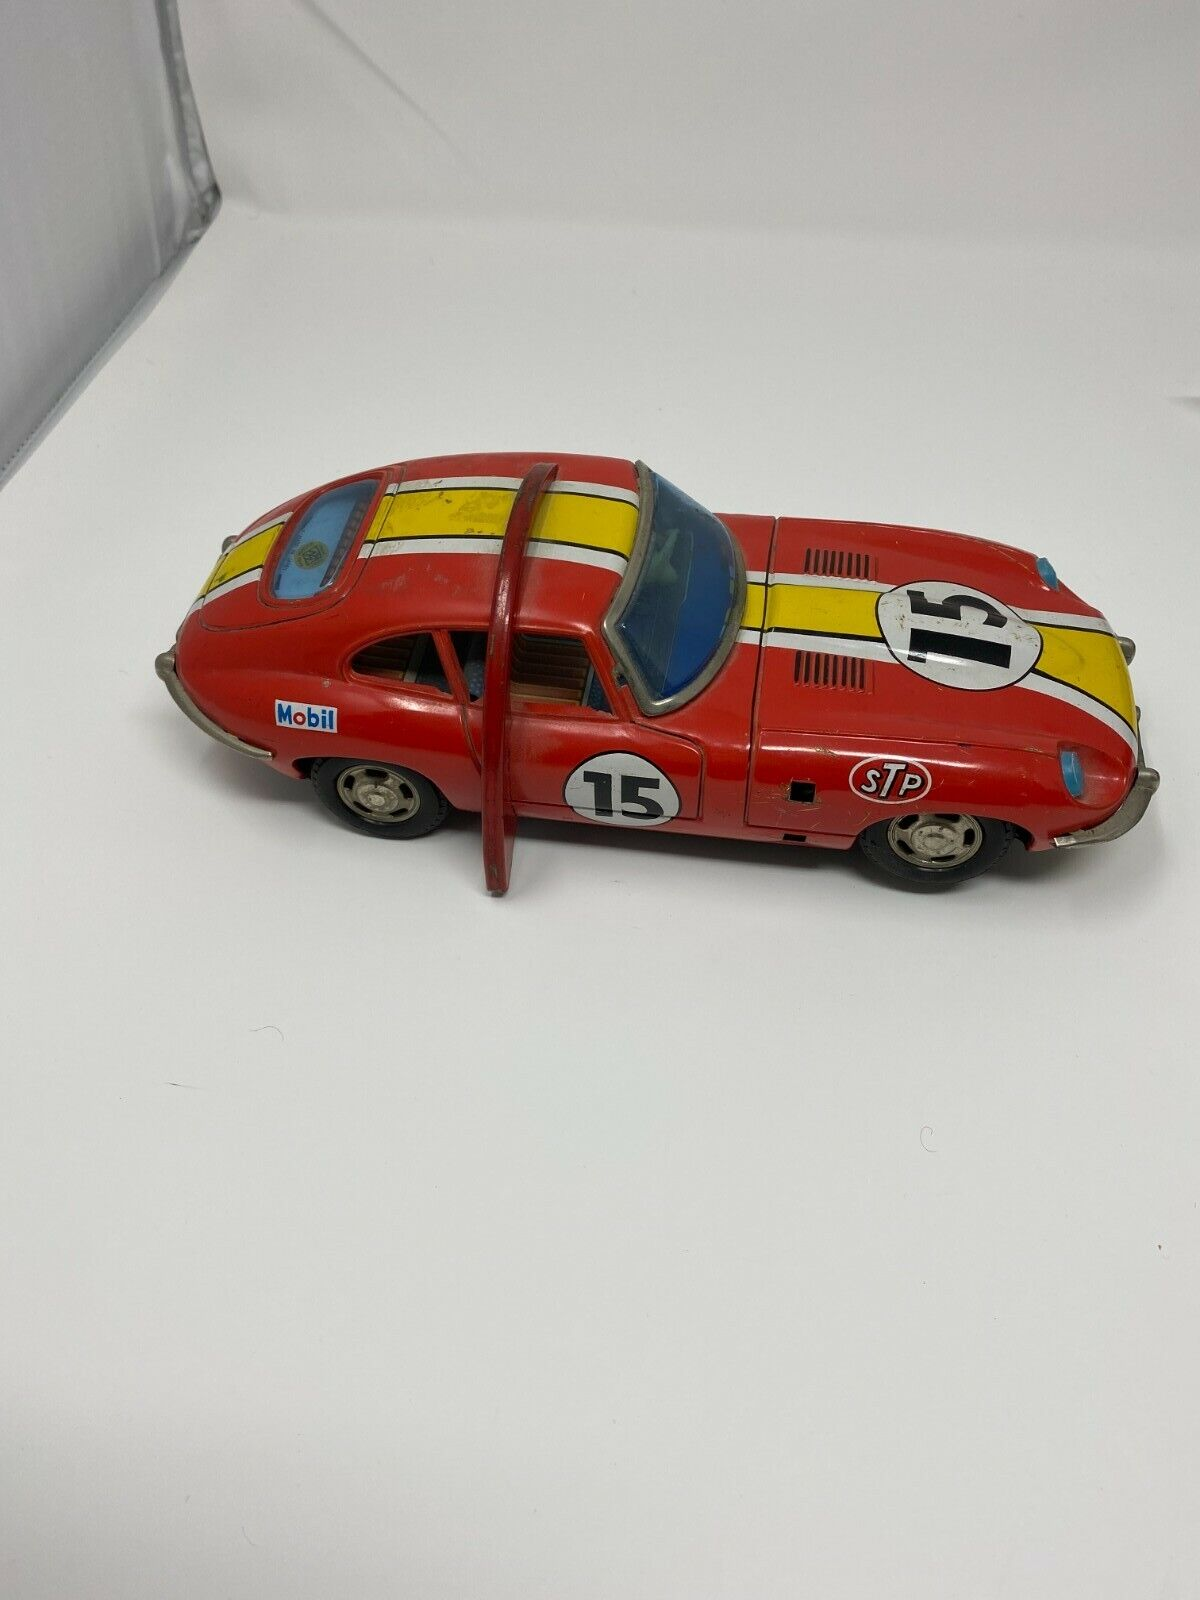 Masudaya Modern Toys Japan Tin Batt Op Jaguar 1968 E-TYPE Roll Over Stunt Car - $40.00